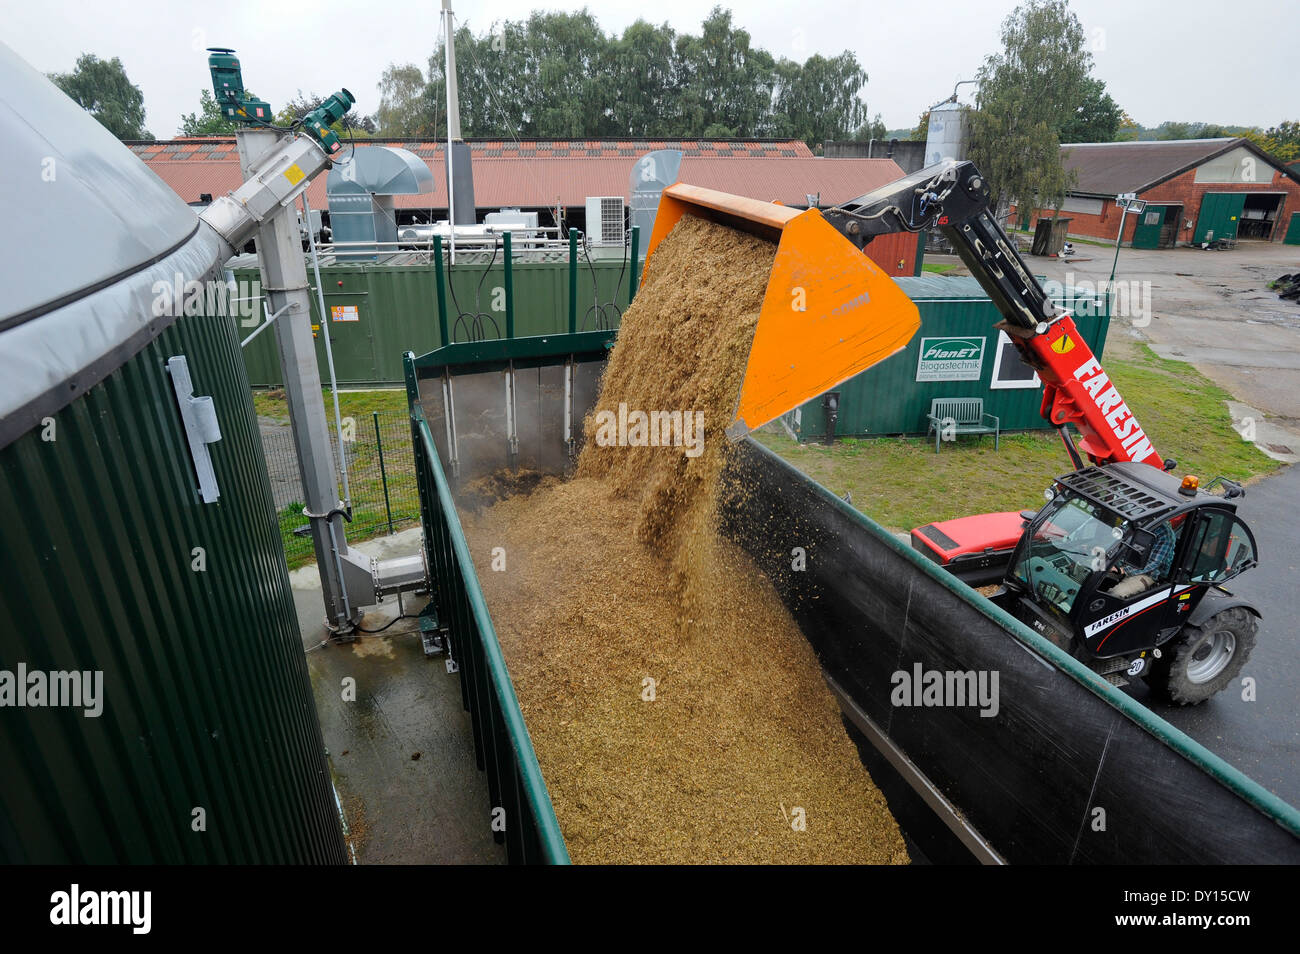 GERMANY Schleswig-Holstein, Biogas plant at cow milk farm, maize substrate for fermentation - Stock Image